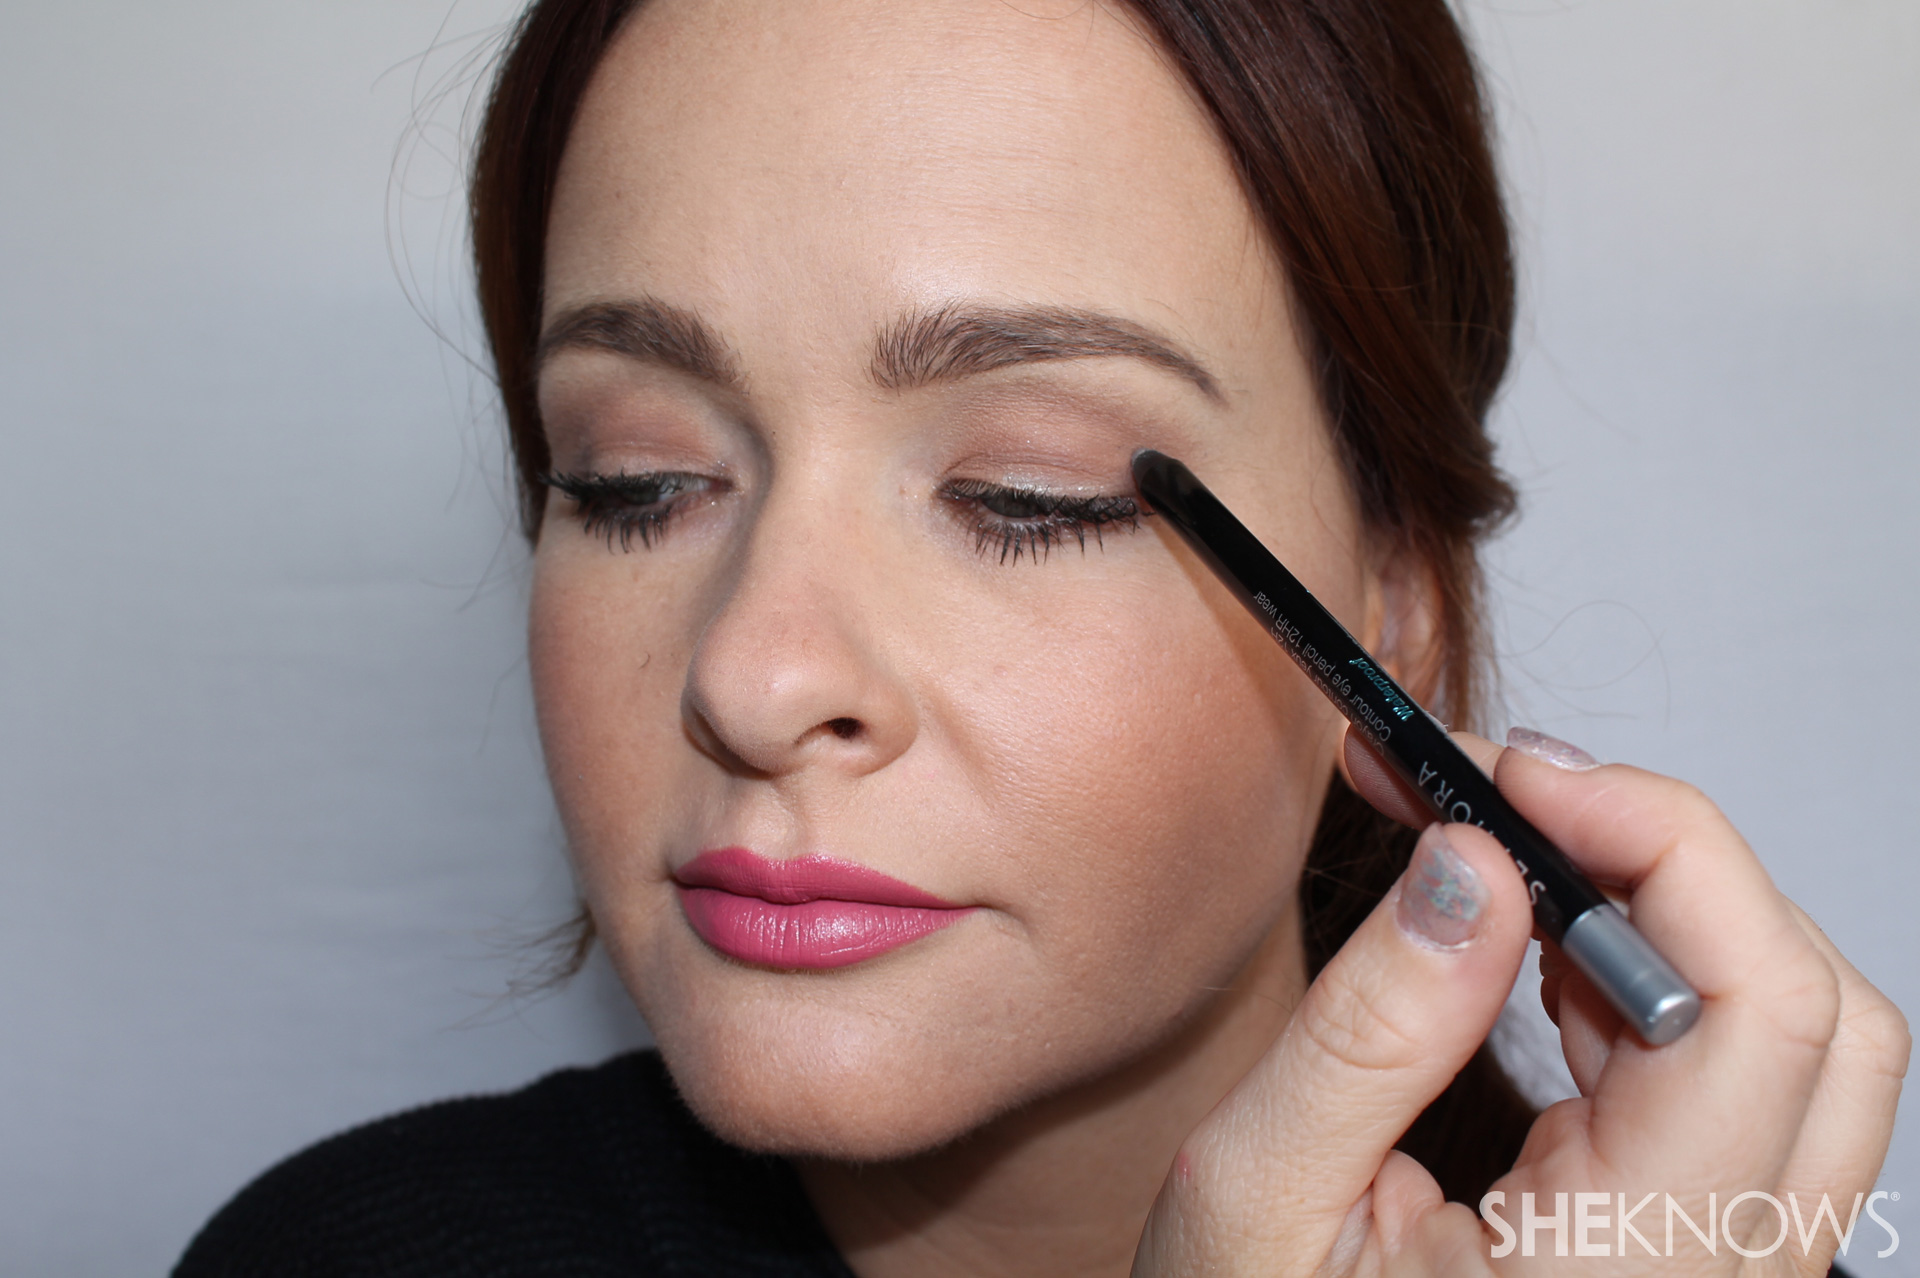 The Triangle Step 1: Draw along lash line